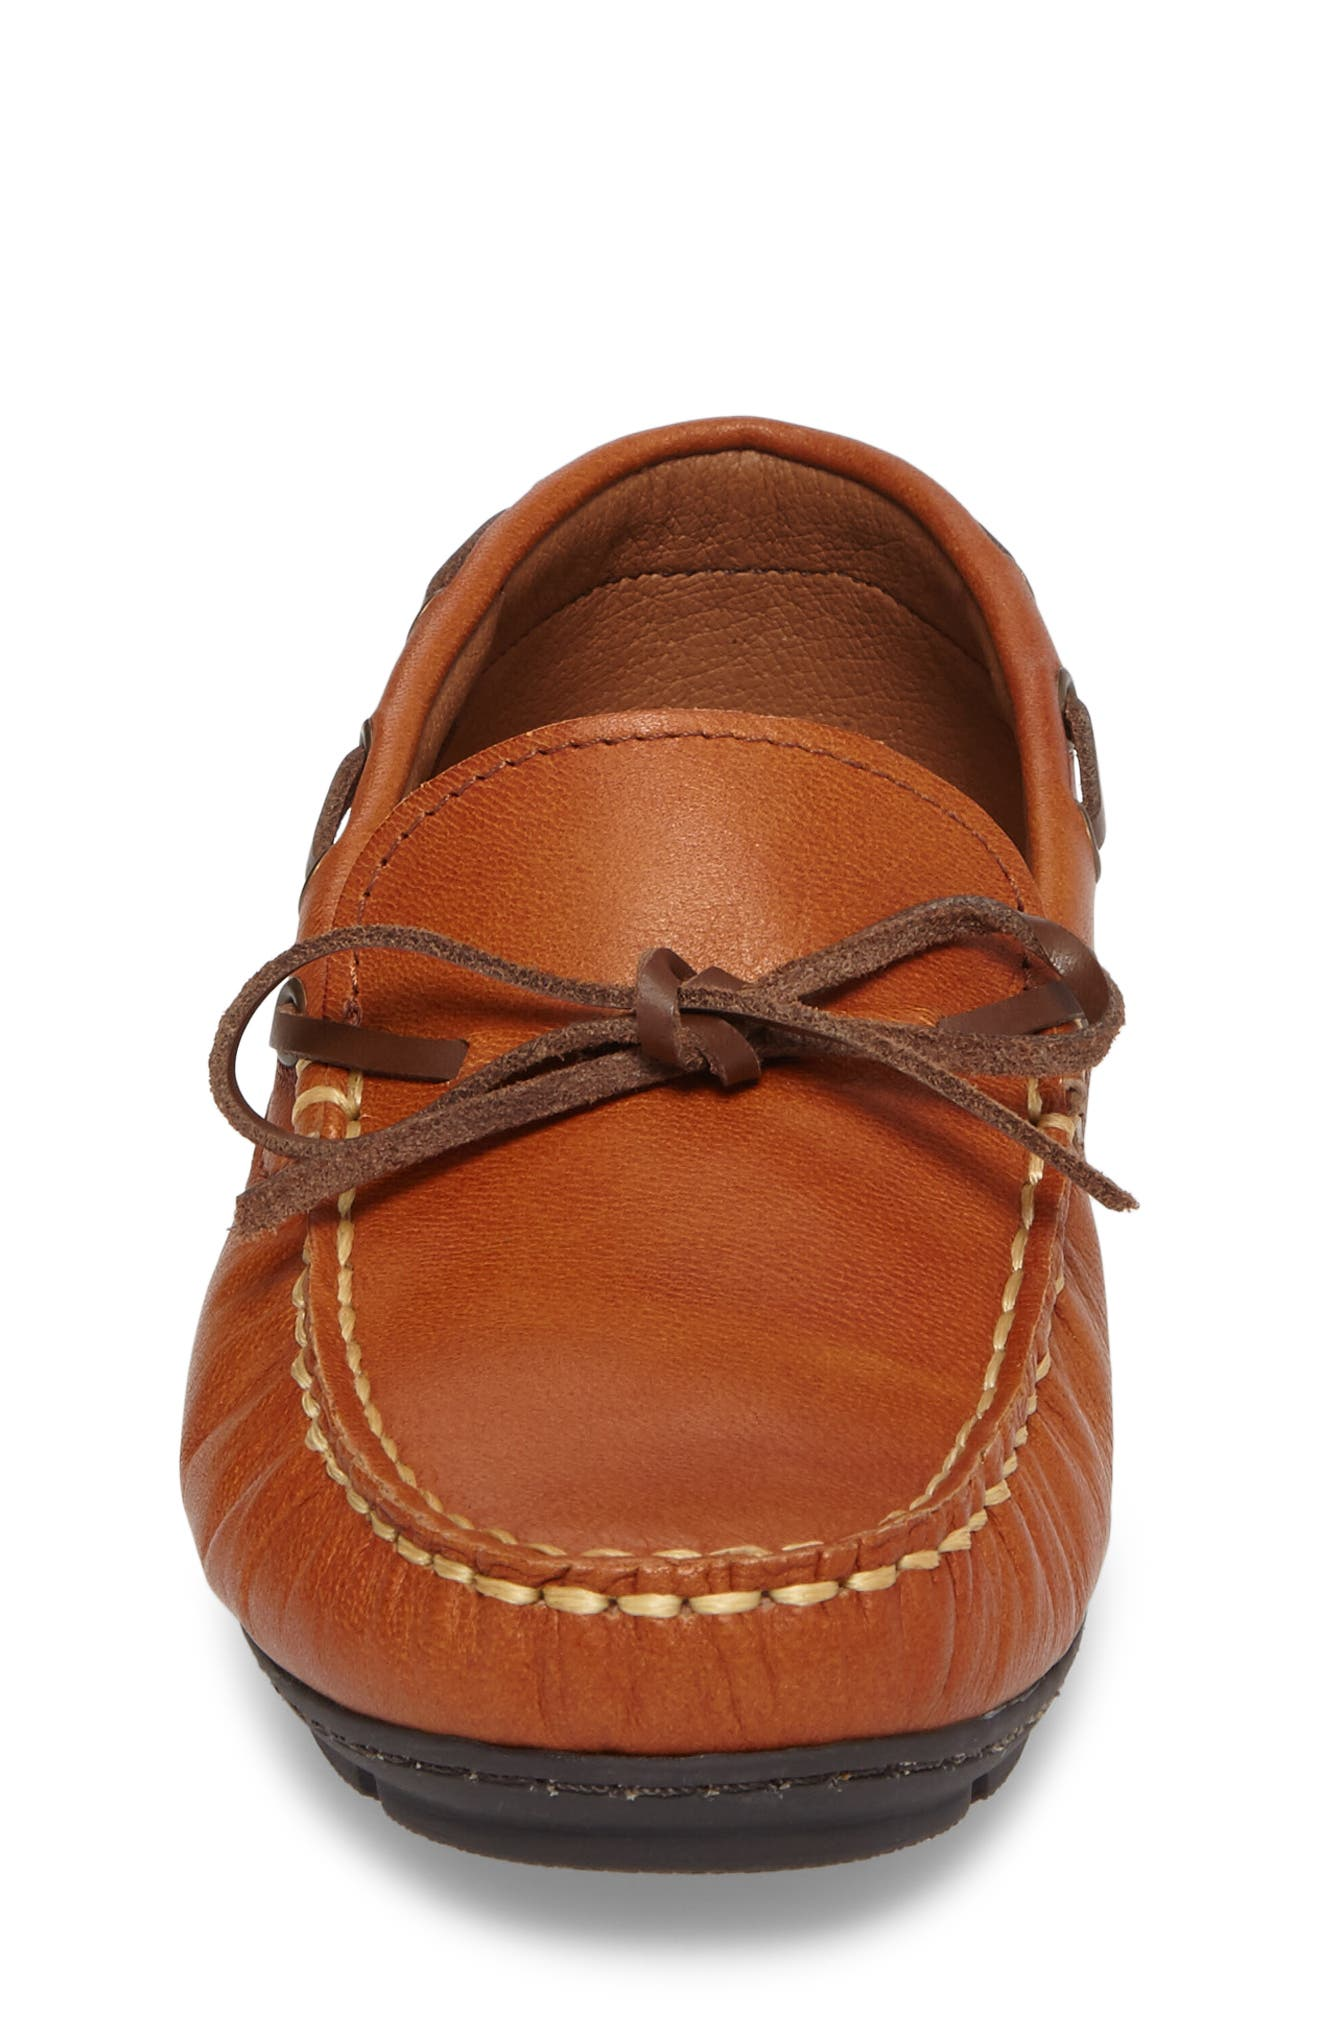 Doile Loafer,                             Alternate thumbnail 4, color,                             Naturale Leather